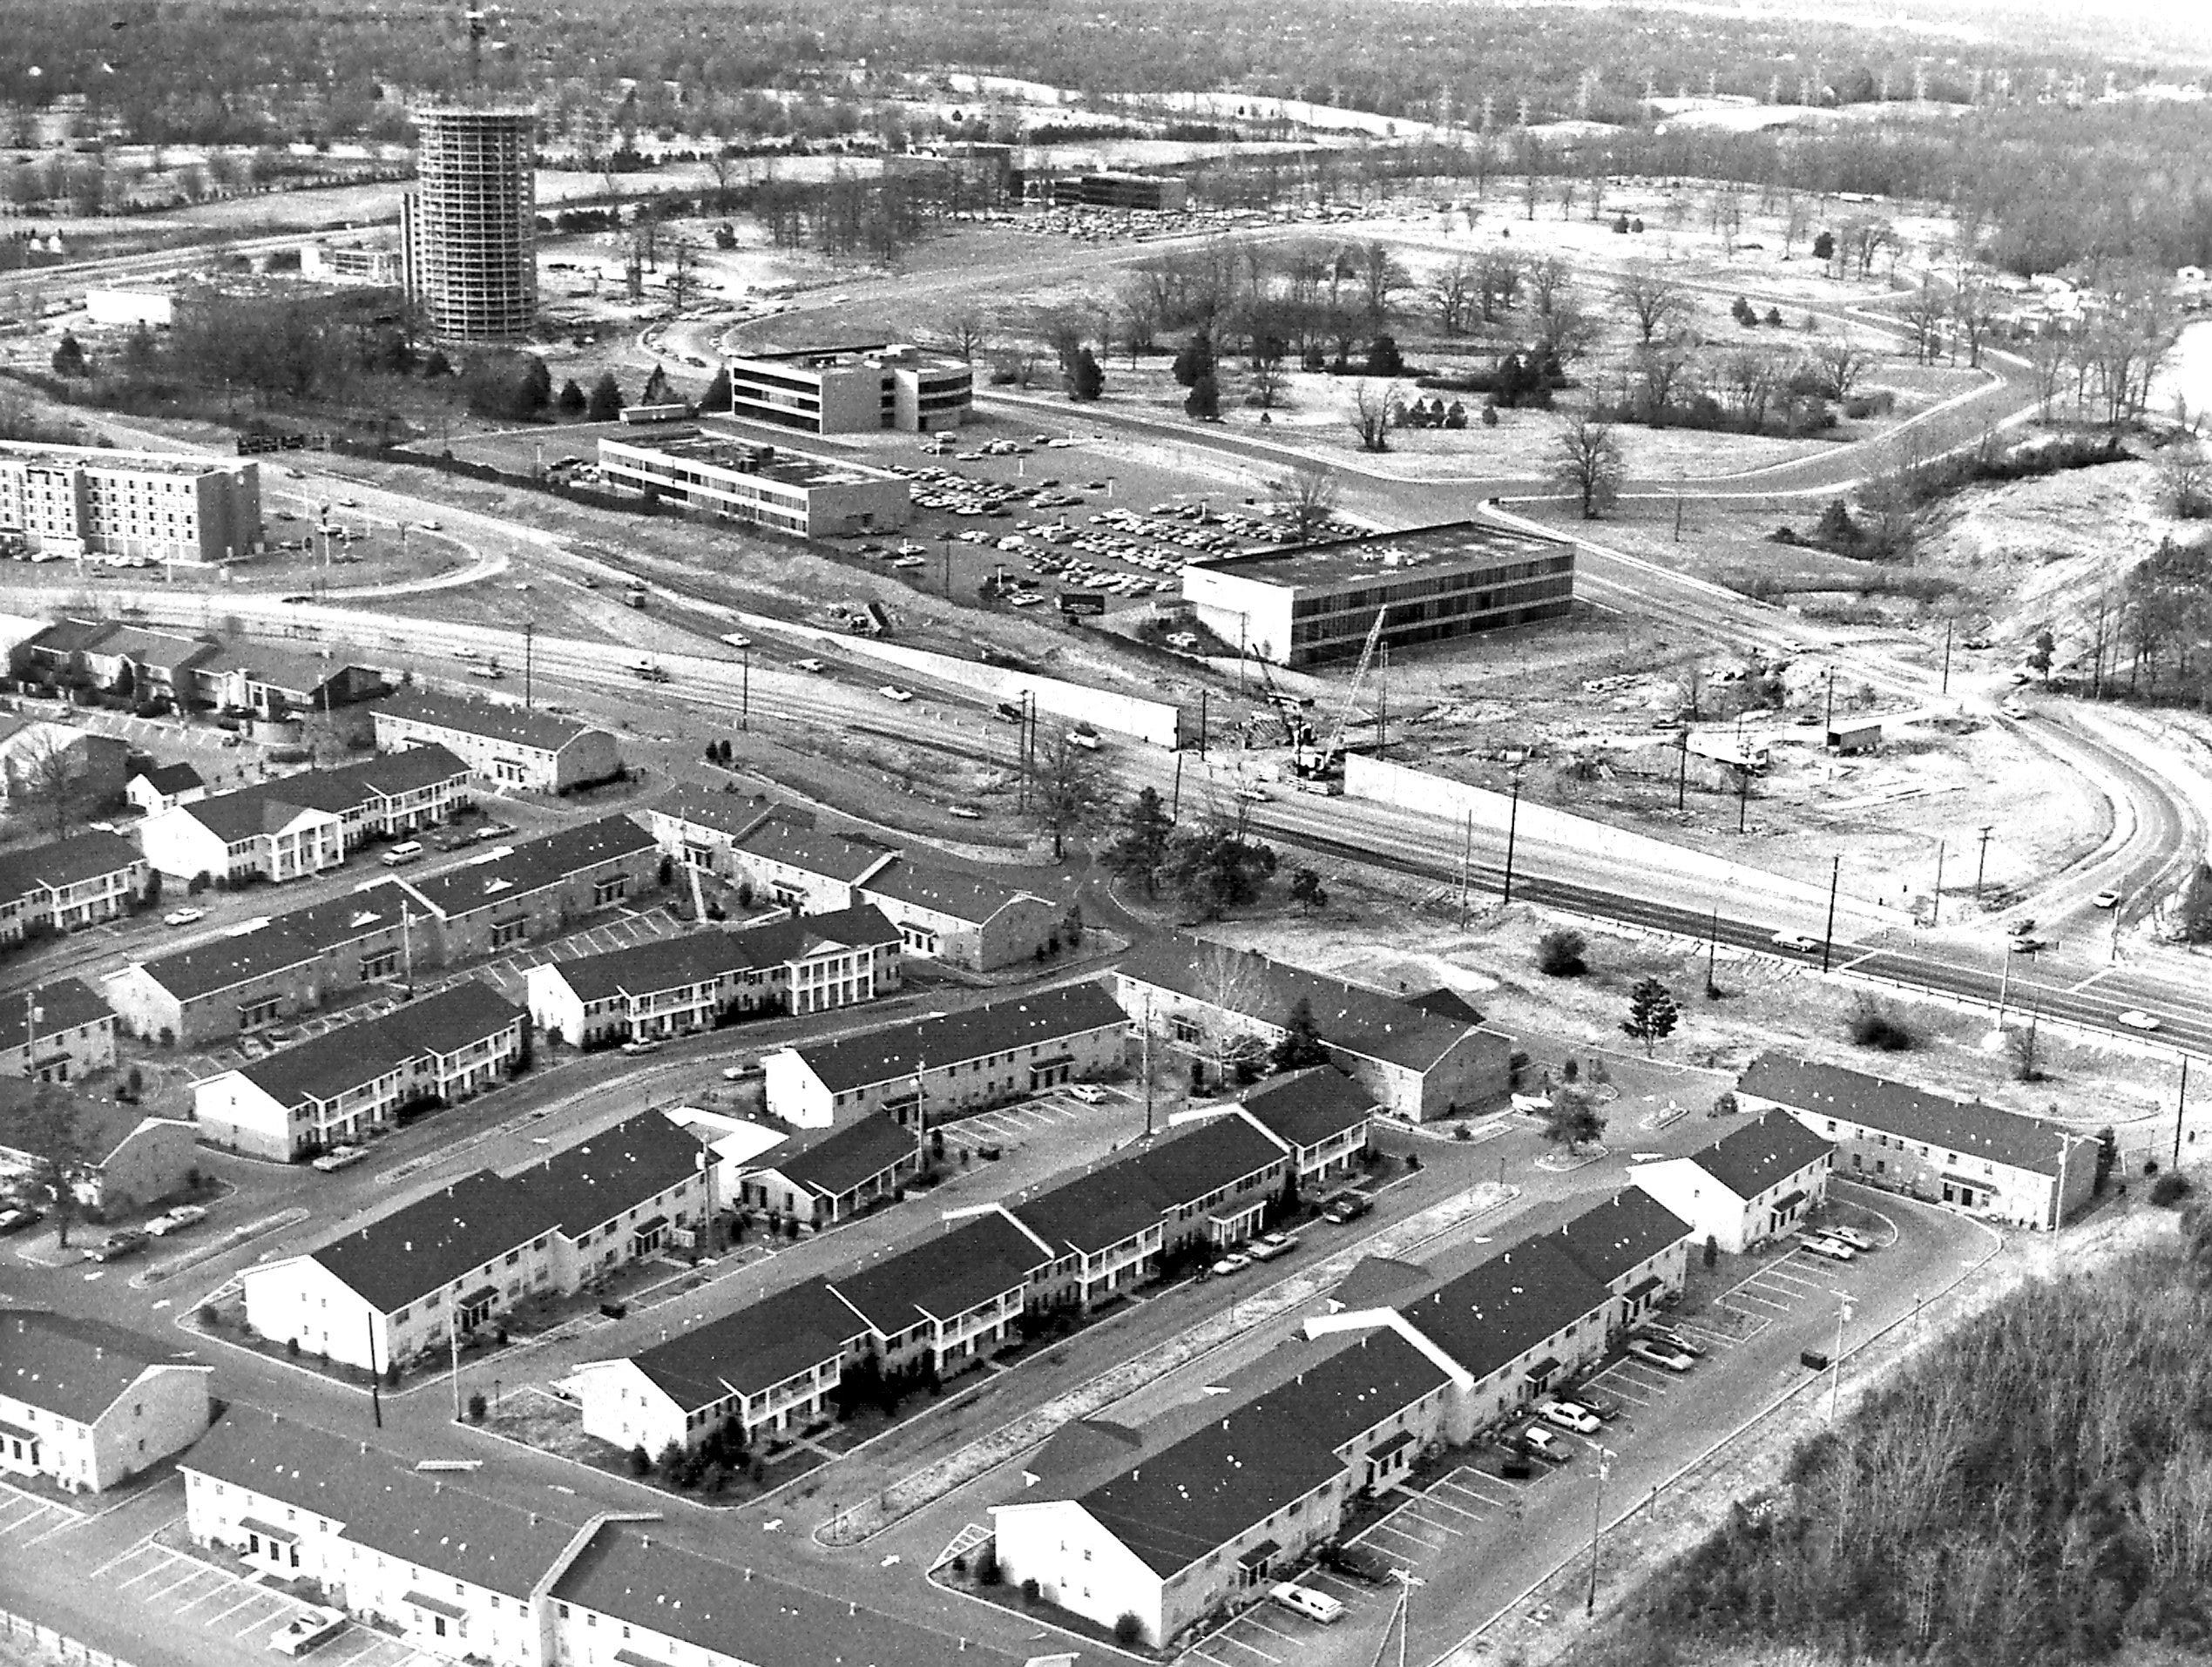 The area on Poplar Avenue east of Interstate 240 as seen from the southeast in  December 1974.  The area north of Poplar is under development where Ridgeway Country Club once thrived.  At upper left, the Hyatt Regency rises above the landscape and work is underway for the overpass for westbound Poplar Avenue traffic in the center of the image.  Apartments in the foreground have given way to a Target store and is still under development.